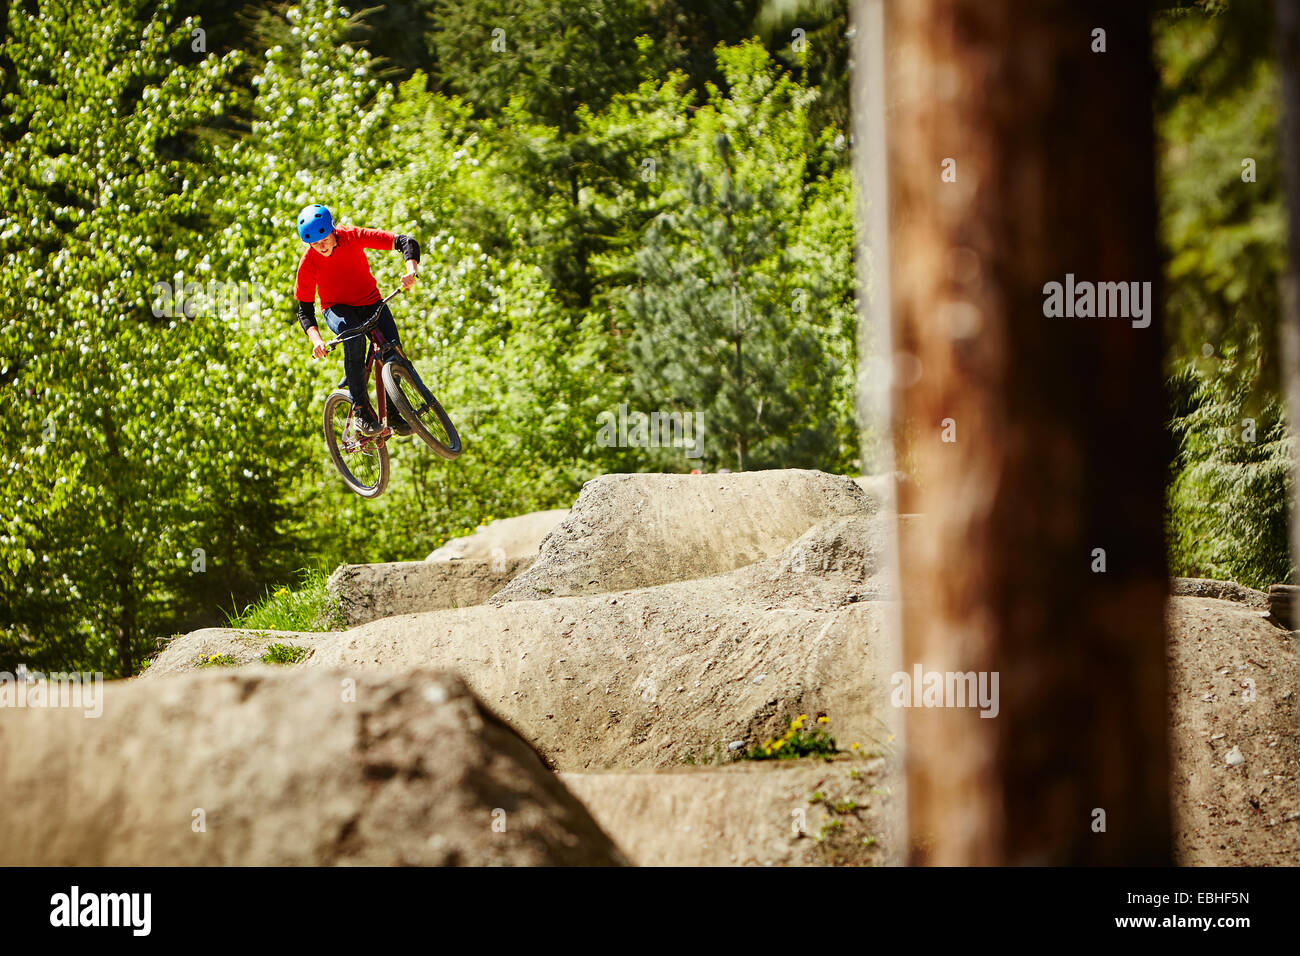 Young female bmx biker jumping mid air from rocks in forest - Stock Image